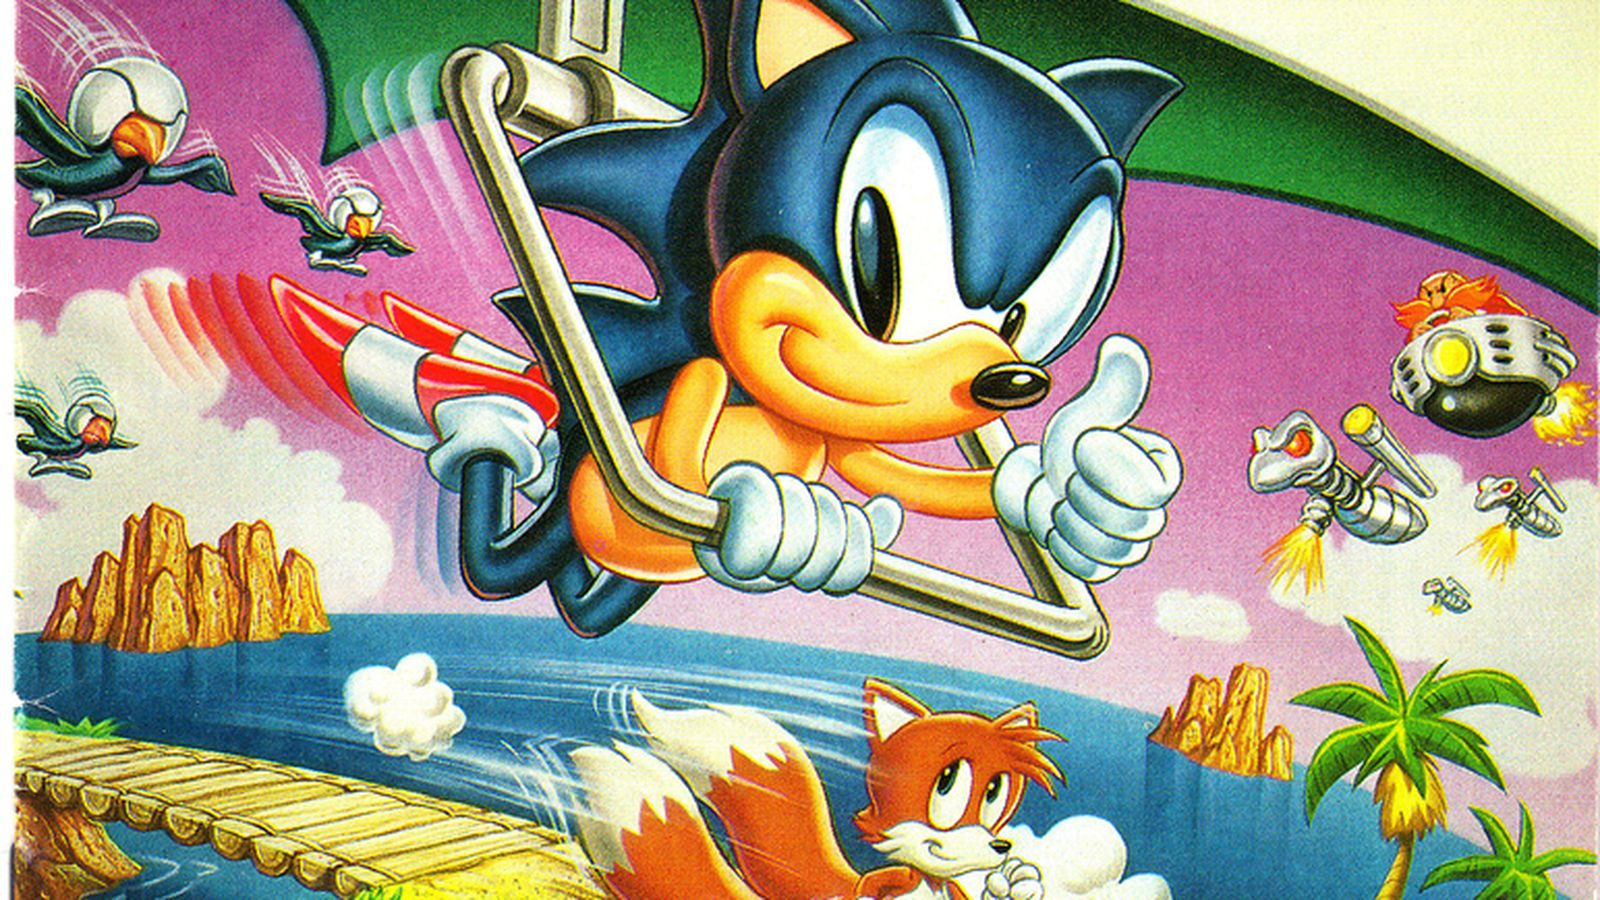 Sonic The Hedgehog 2 Sonic Labyrinth And Crystal Warriors